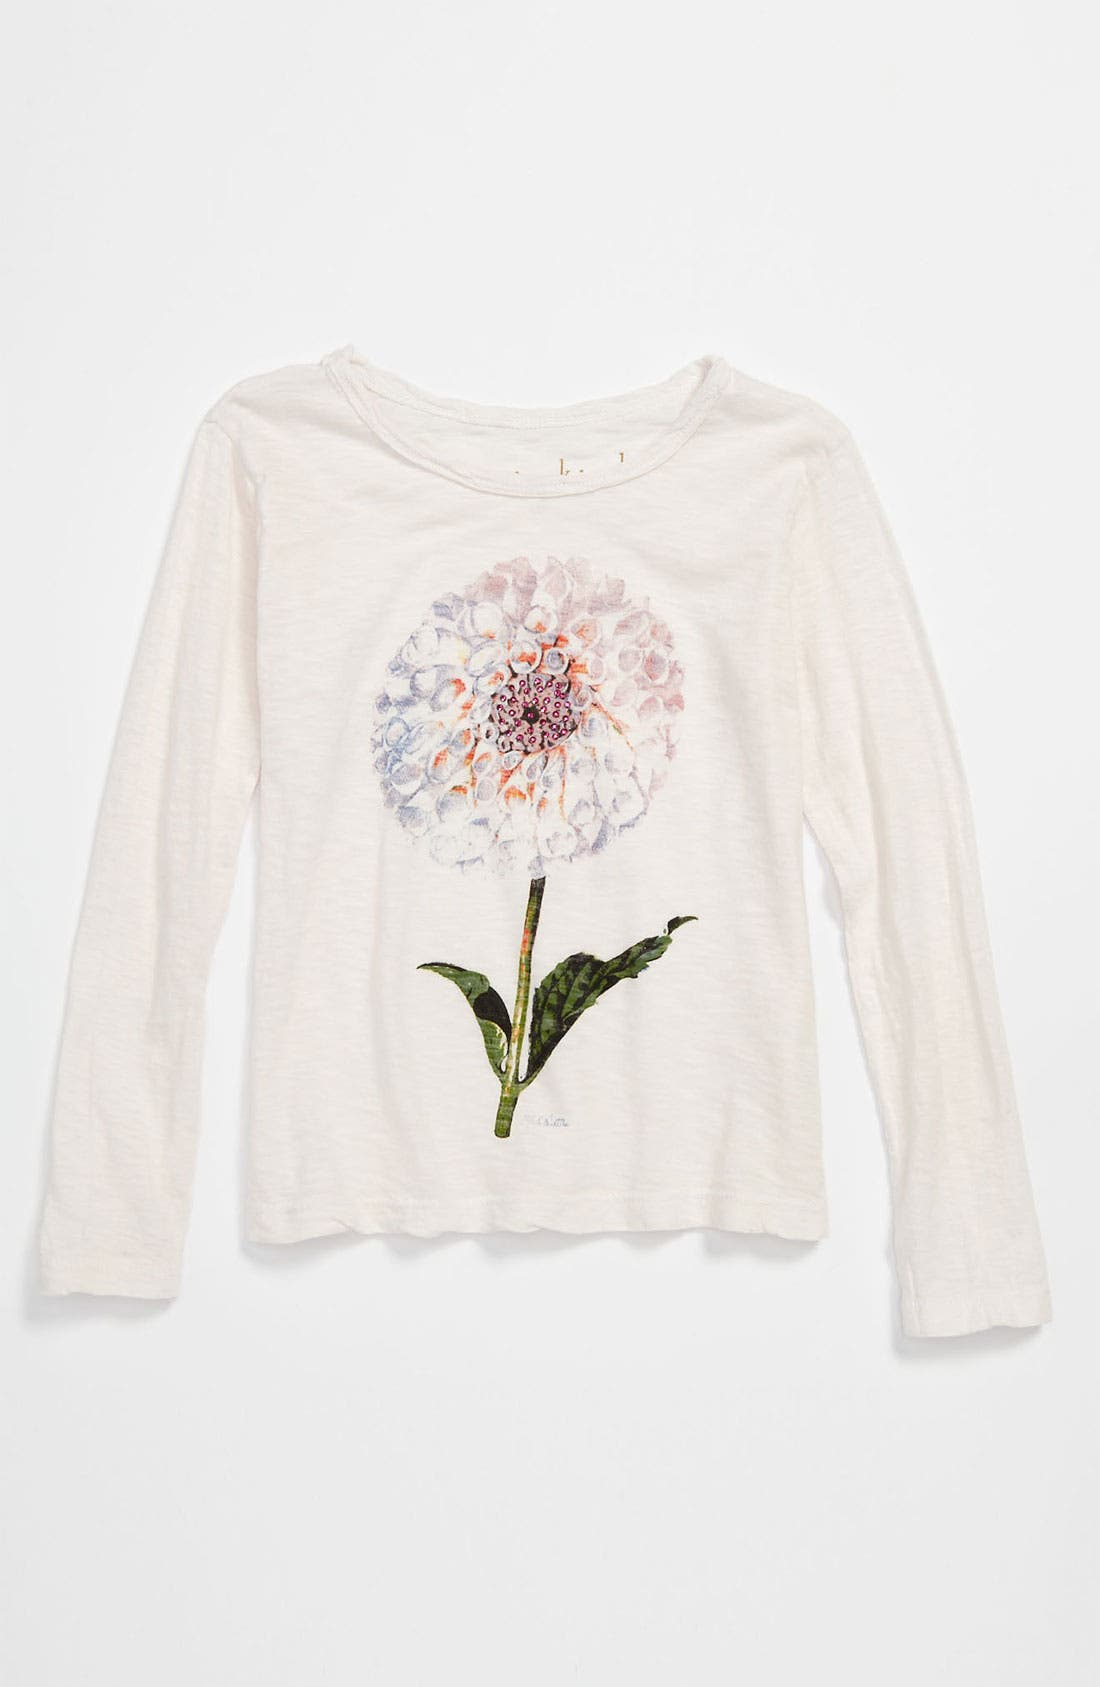 Alternate Image 1 Selected - Curio+Kind Embellished Long Sleeve Tee (Toddler)